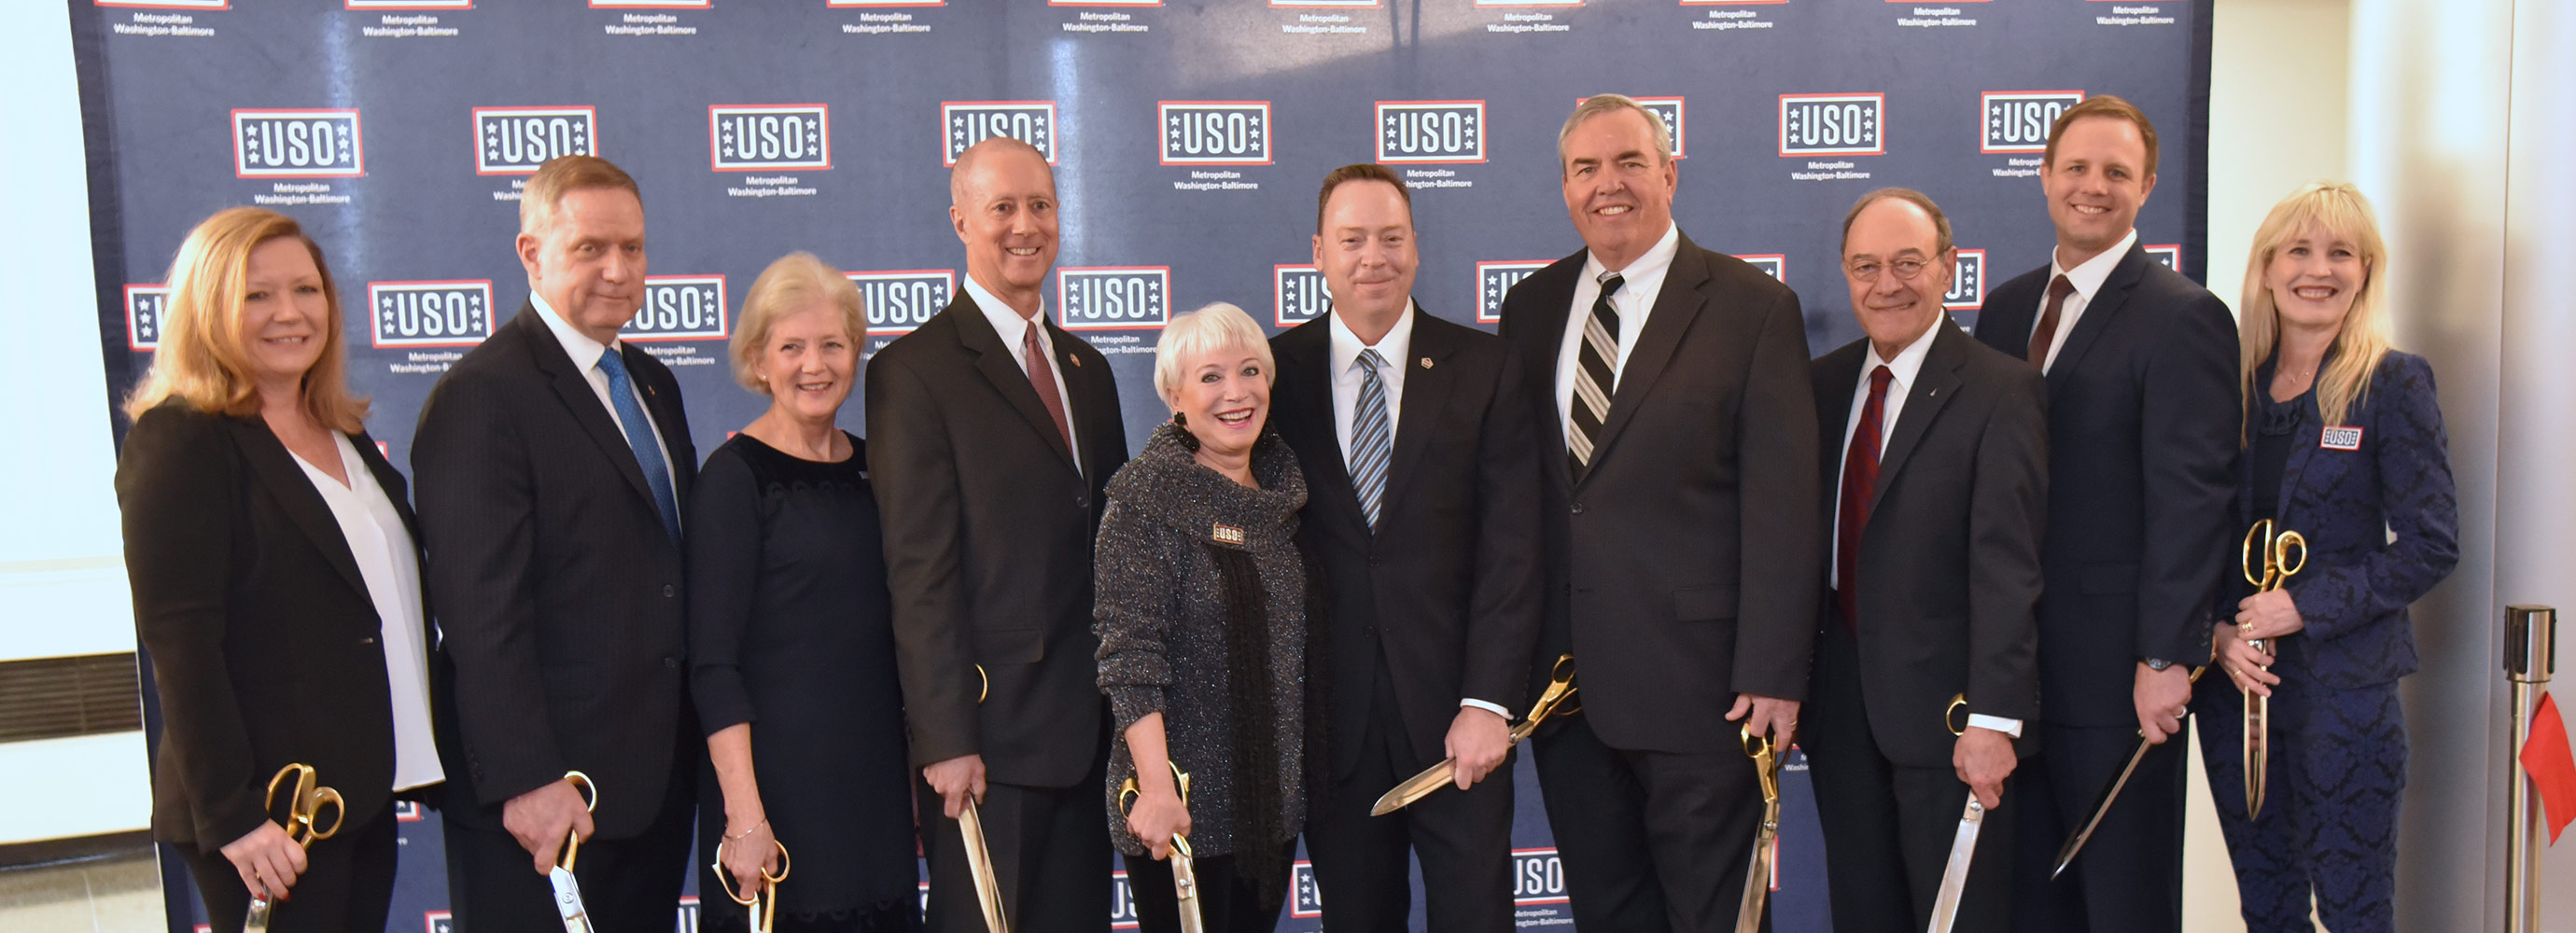 USO lounge ribbon cutting